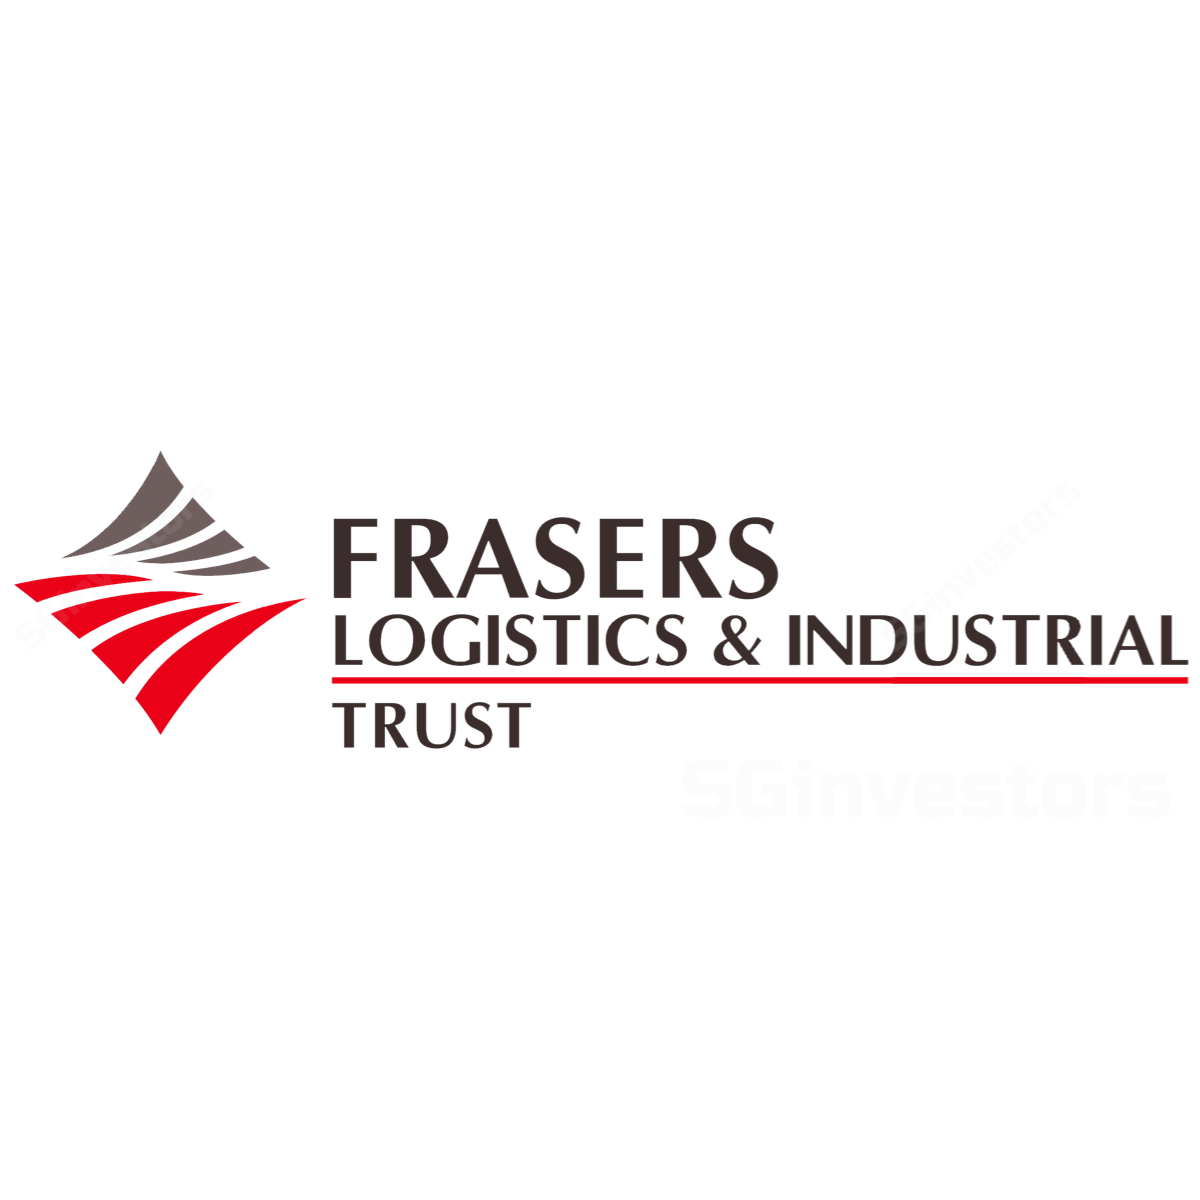 Frasers Logistics & Industrial Trust - OCBC Investment 2018-05-09: No Surprises In 2qfy18